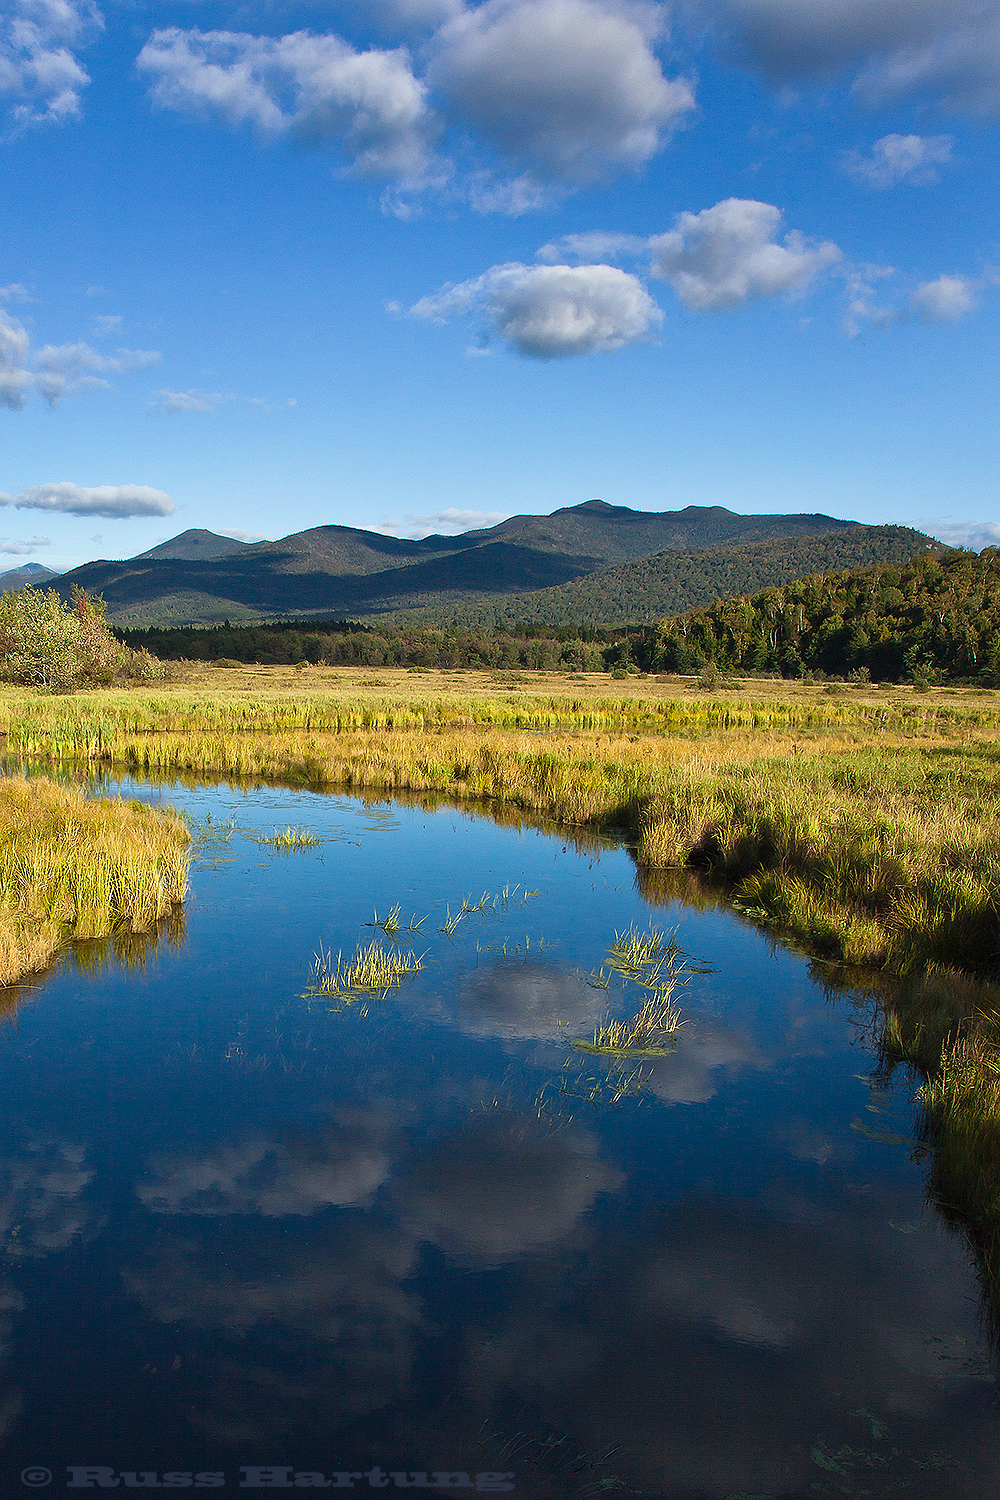 Late summer afternoon near Saranac Lake. Looking towards McKenzie Mountain and Whiteface Mountain.